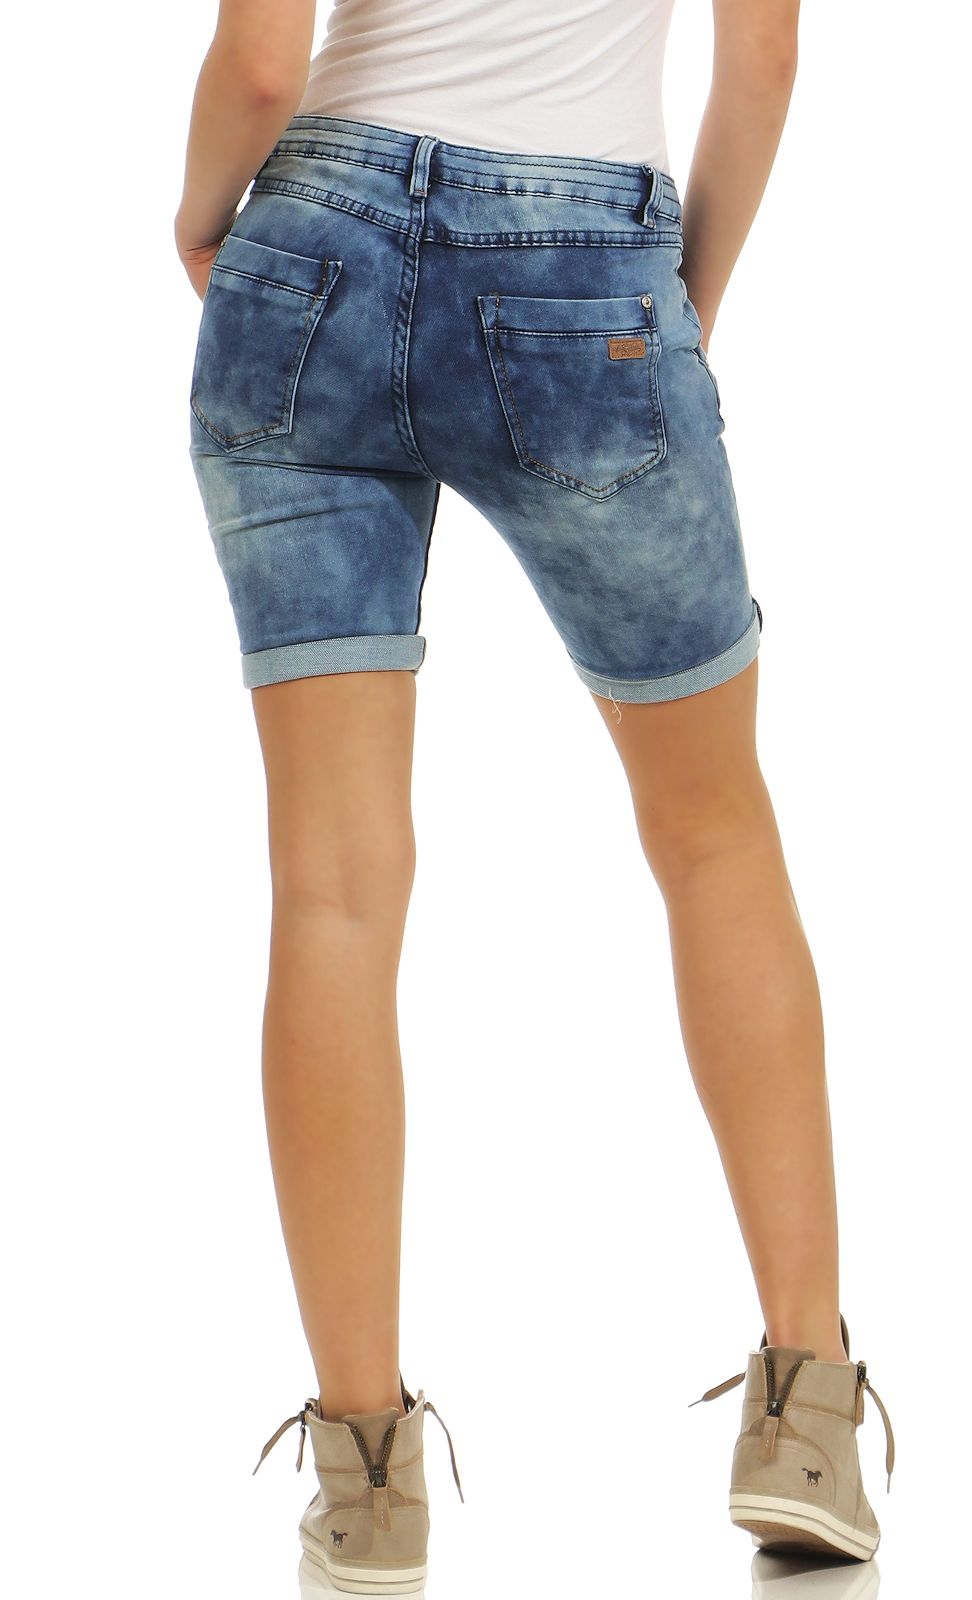 e9a420a28feca4 Damen Shorts Jeans Jeansoptik Sweat Denim kurze Hose Urban Surface ...